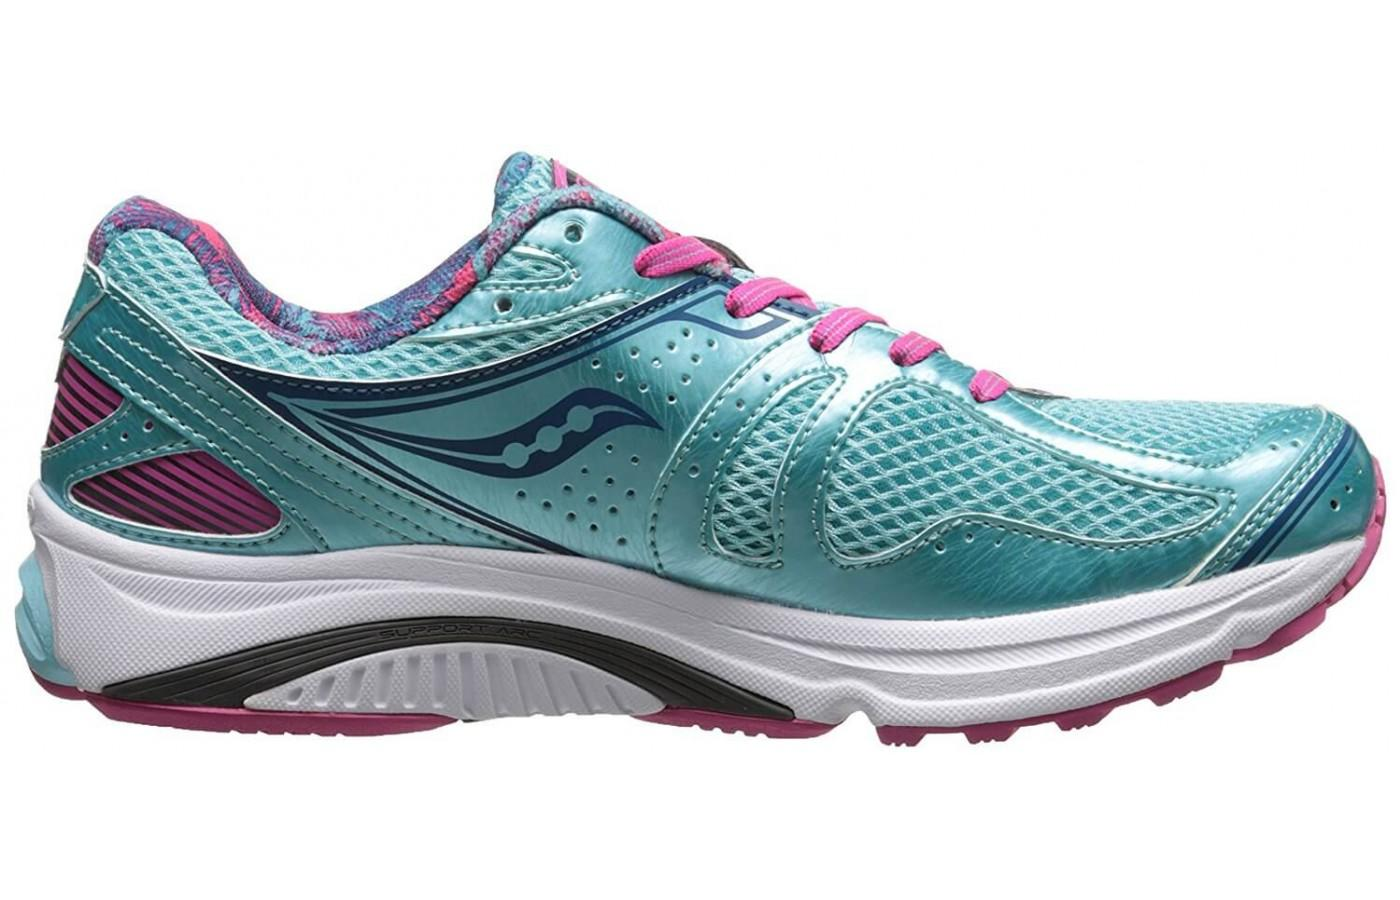 Runners will find mild to moderate pronation support in these shoes.